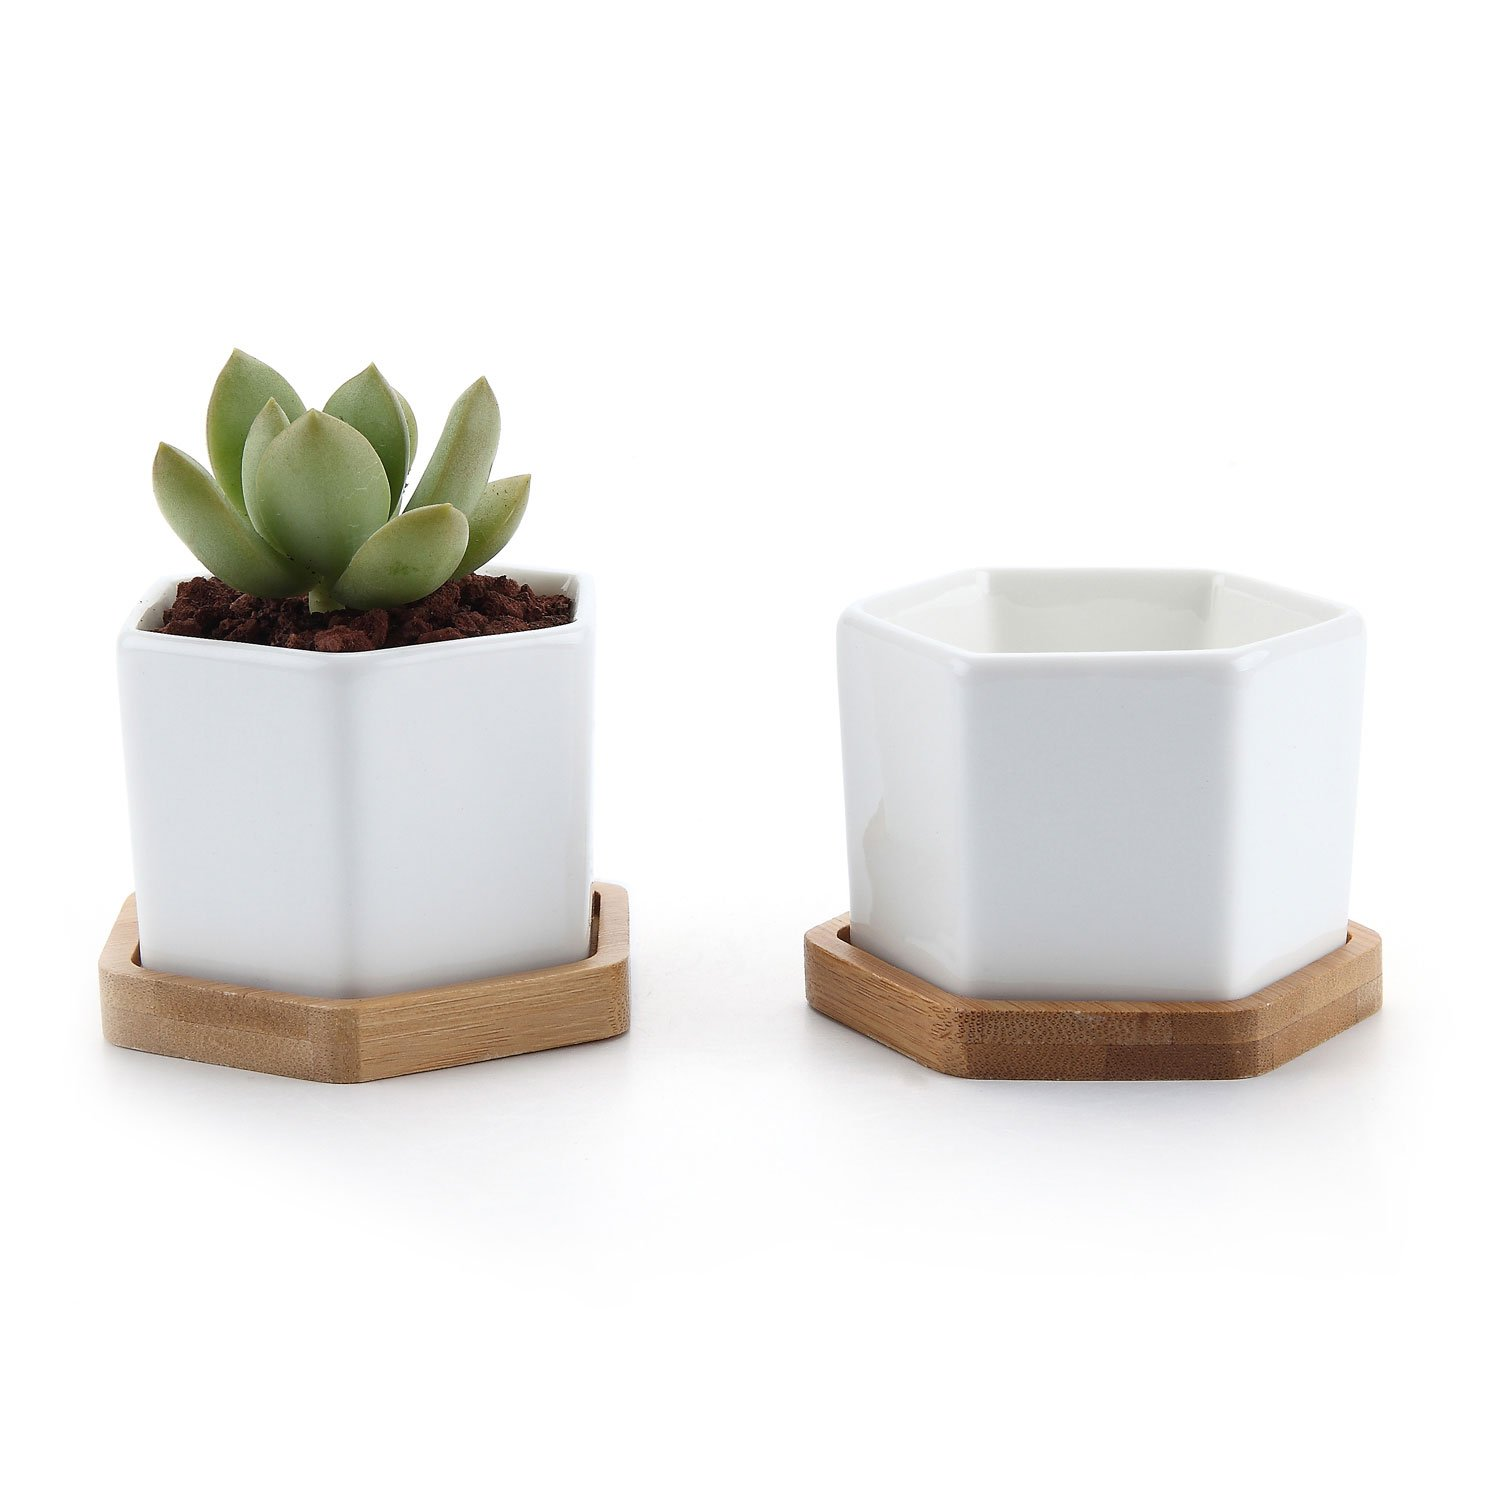 T4U 2.75'' White Ceramic Hexagon Succulent Cactus Planter Pots with FREE Bamboo Tray for Home Decoration 1 Pack of 2 by T4U